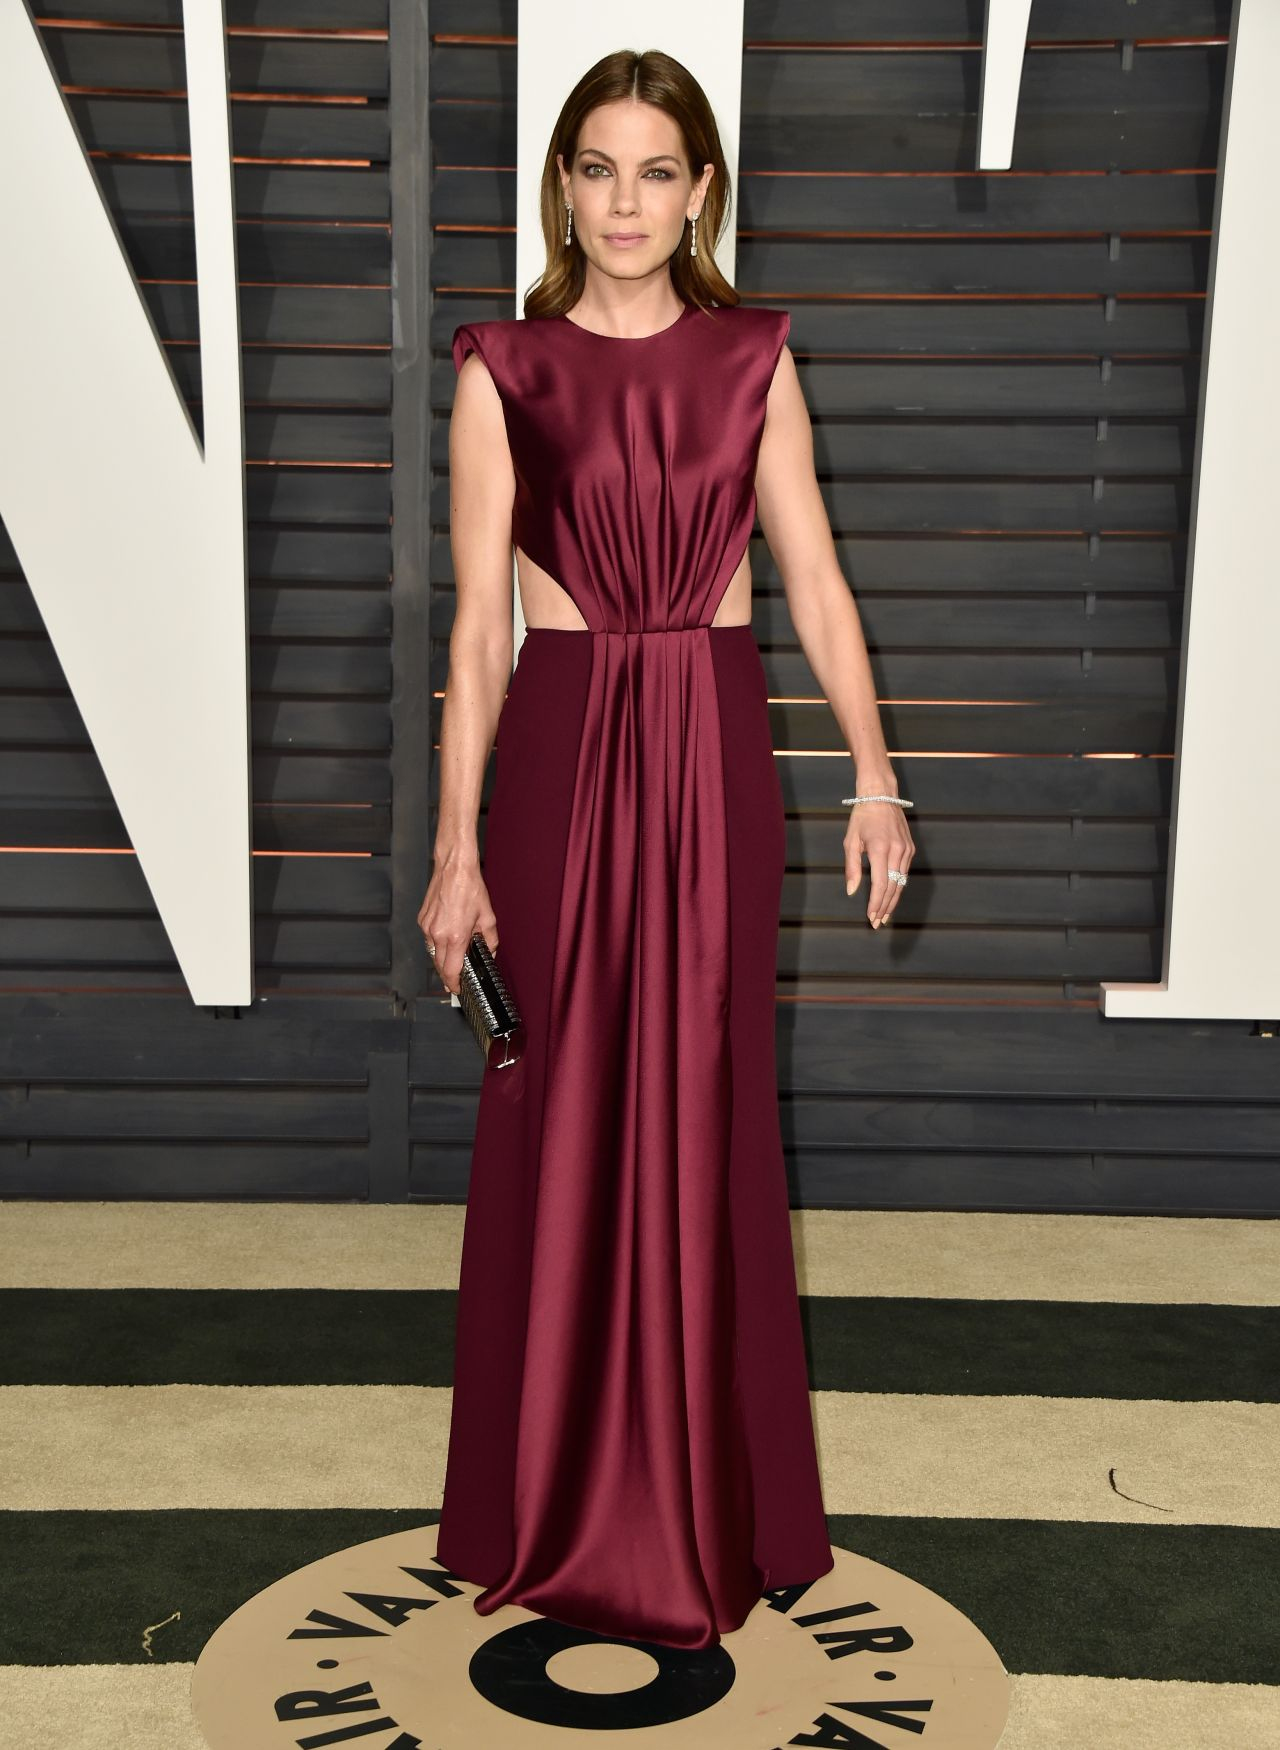 michelle-monaghan-monique-lhuillier-2015-vanity-fair-oscar-party